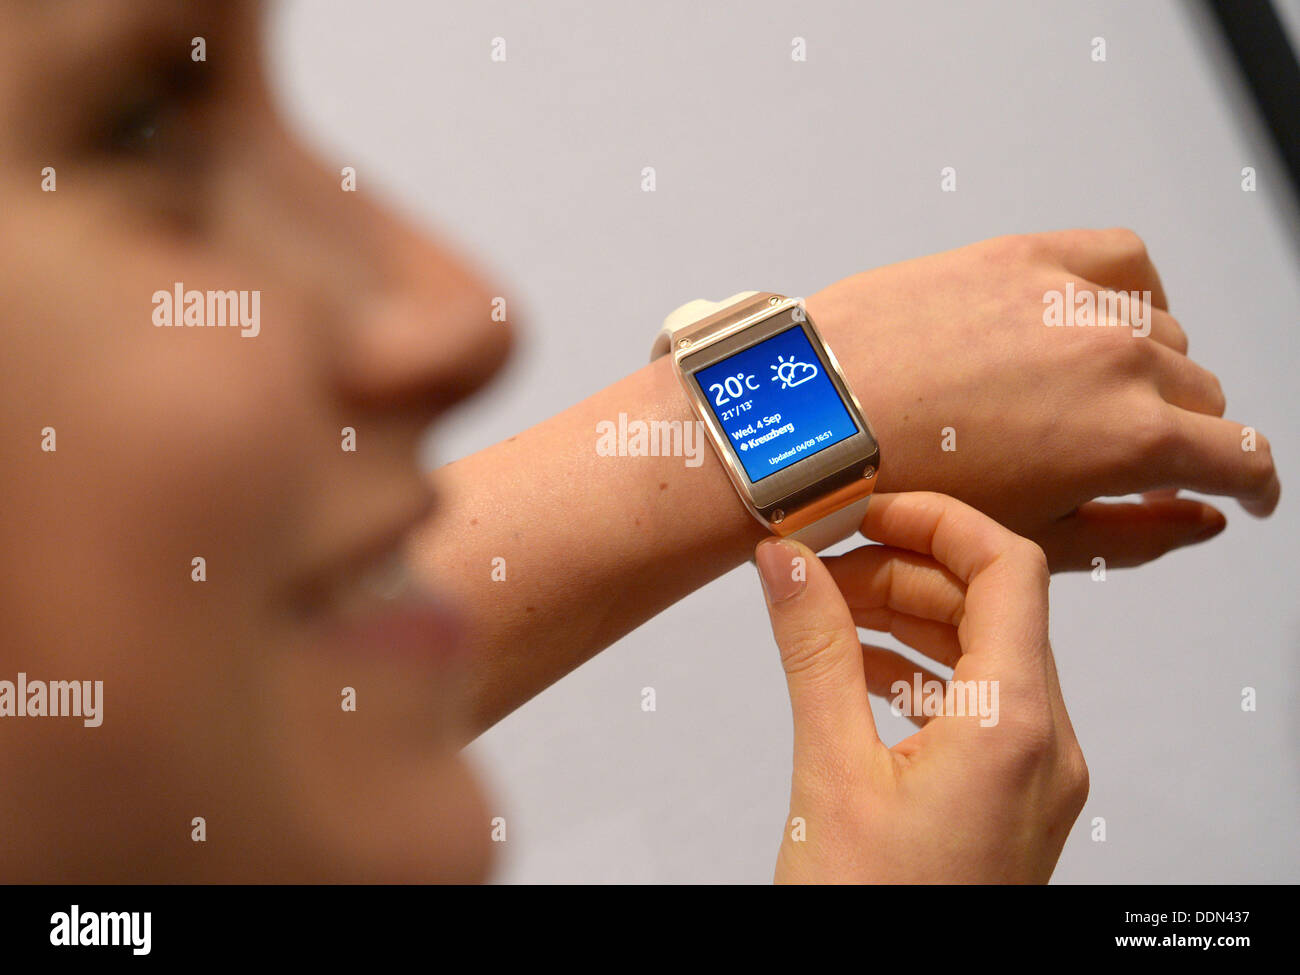 Berlin, Germany. 04th Sep, 2013. Samsung's new 'Galaxy Gear' smartwatch is presented at the consumer electronics fair IFA in Berlin, Germany, 04 September 2013. The IFA takes place from 06 to 11 September, and claims to be the largest consumer electronics fair. Photo: Rainer Jensen/dpa/Alamy Live News - Stock Image